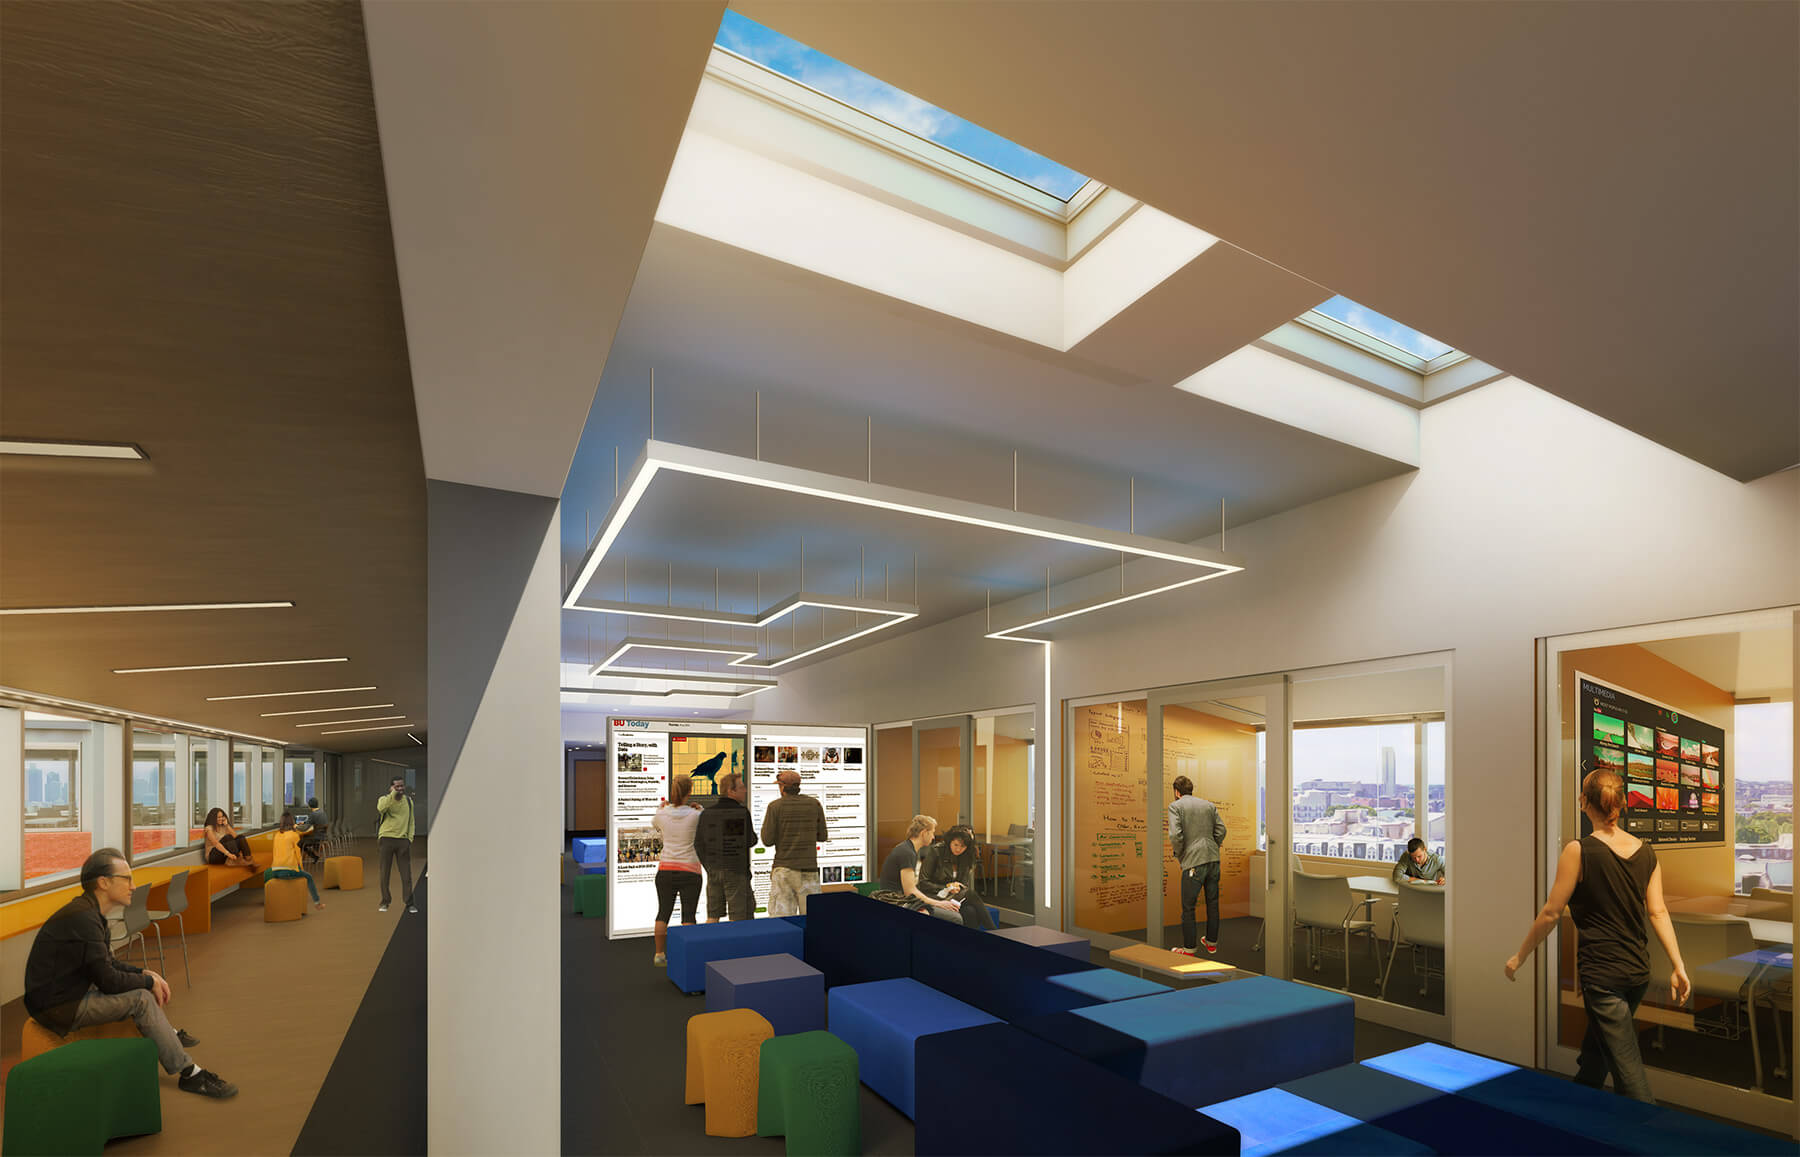 Interior Rendering of flexible study spaces with skylights, and views into adjacent study rooms and classrooms.